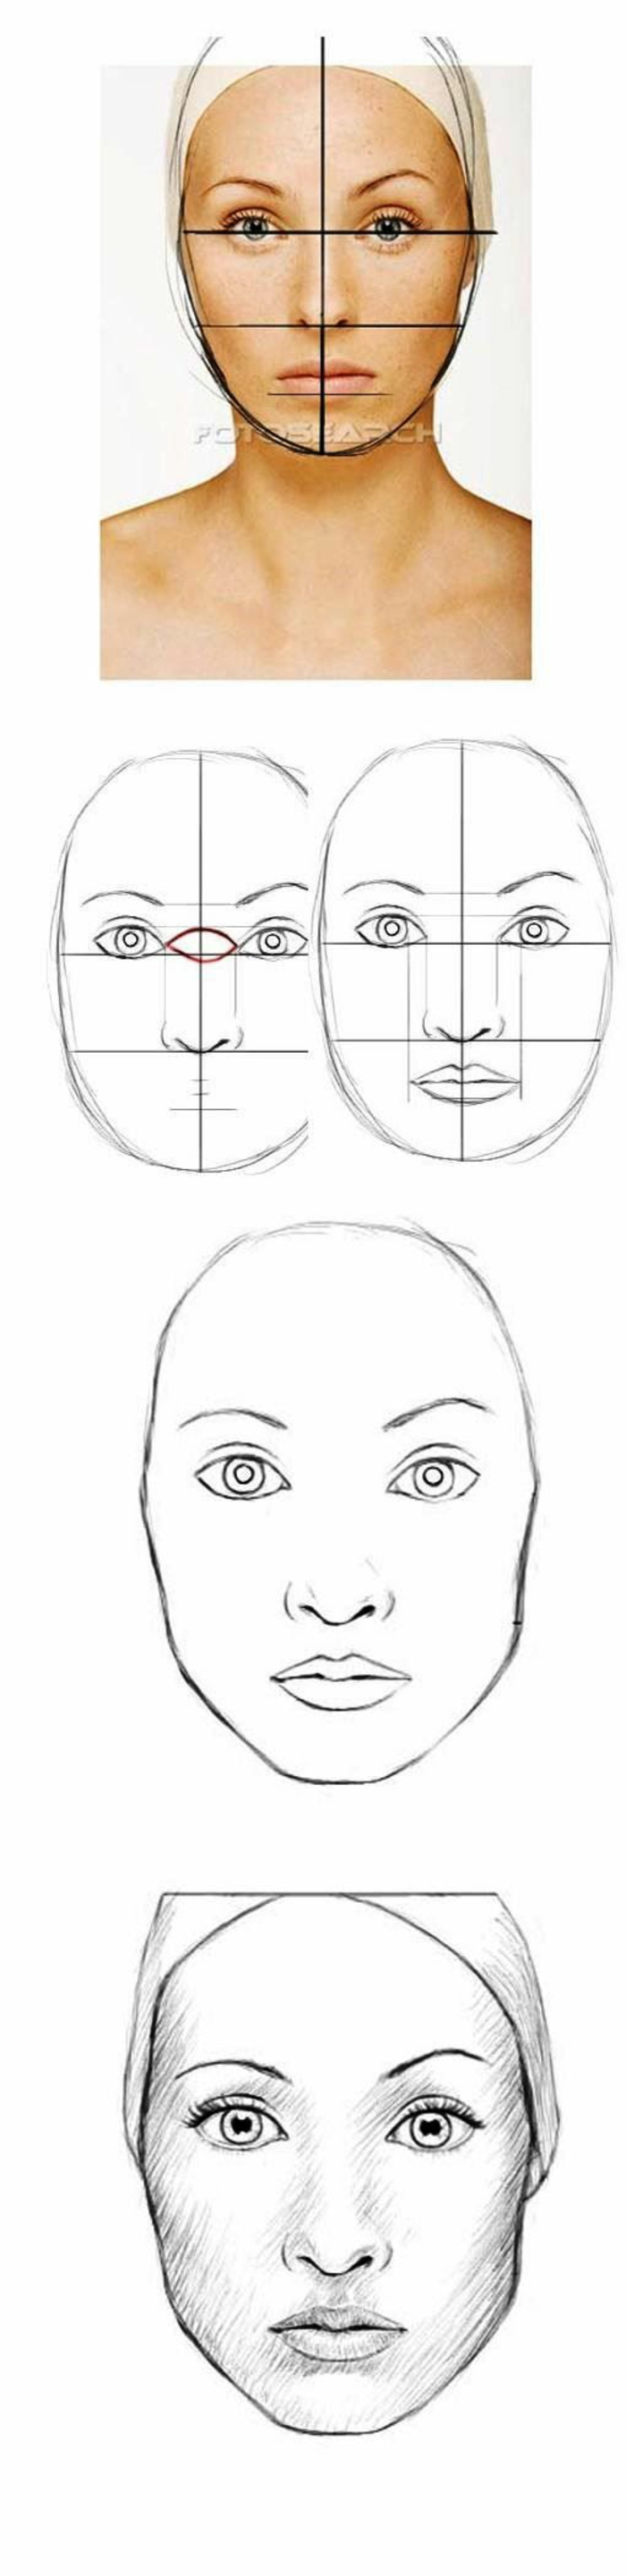 step by step tutorial, how to draw a cartoon person, how to draw a face